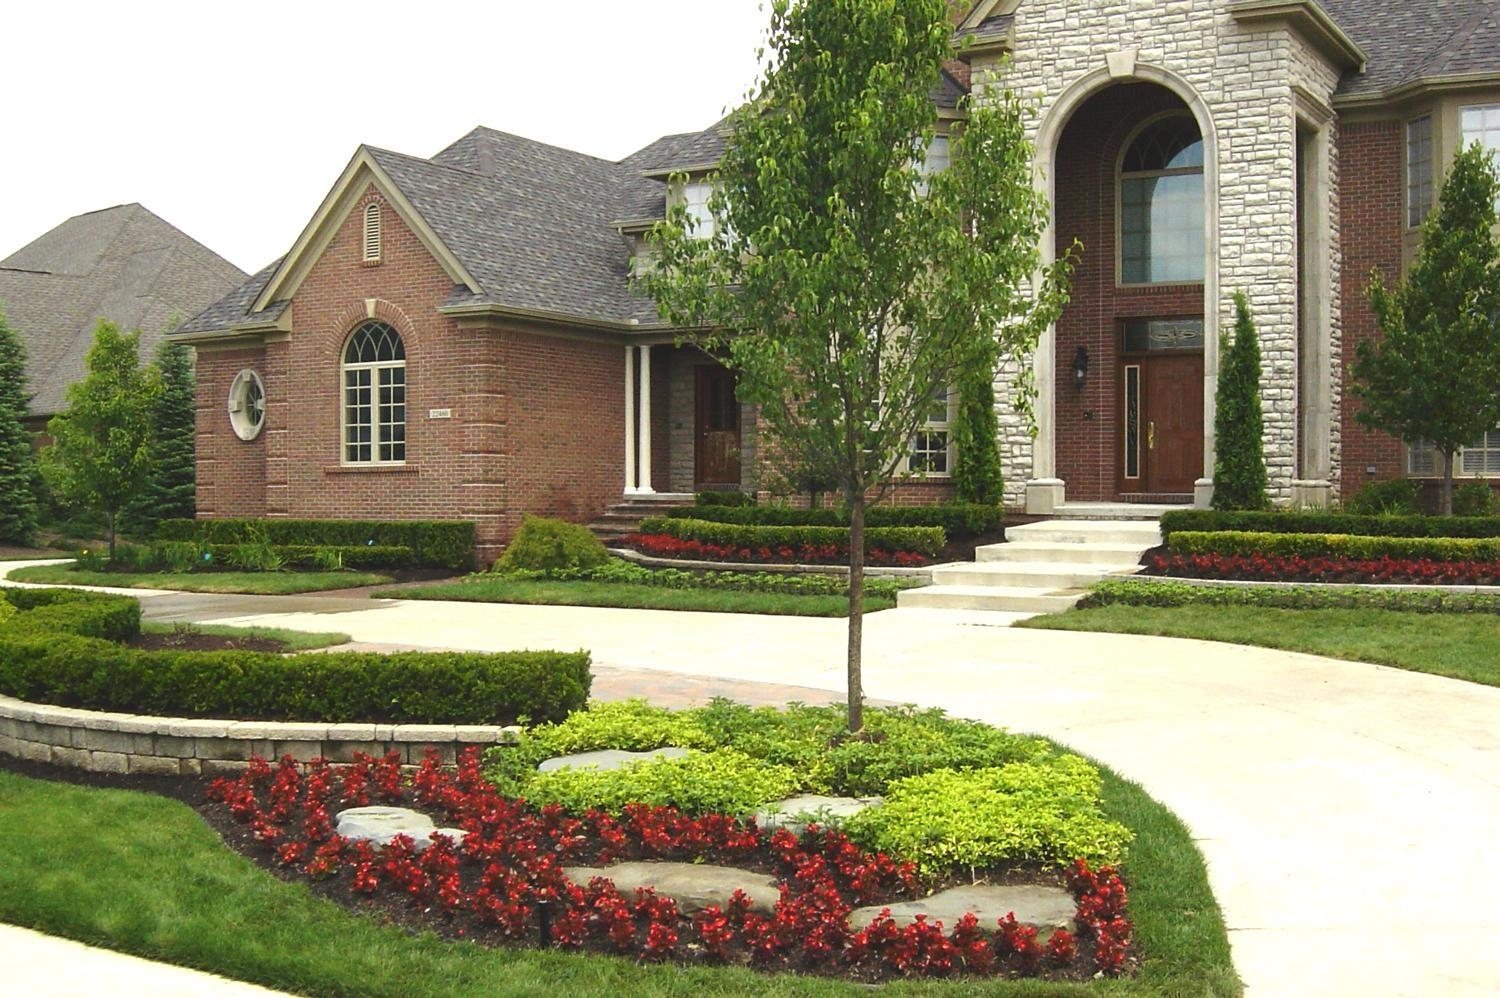 Image of: Front Yard Landscaping Plans Front Yard Landscaping Ideas Front With Regard To Front Yard Landscaping Plans Smart Front Yard Landscaping Plans